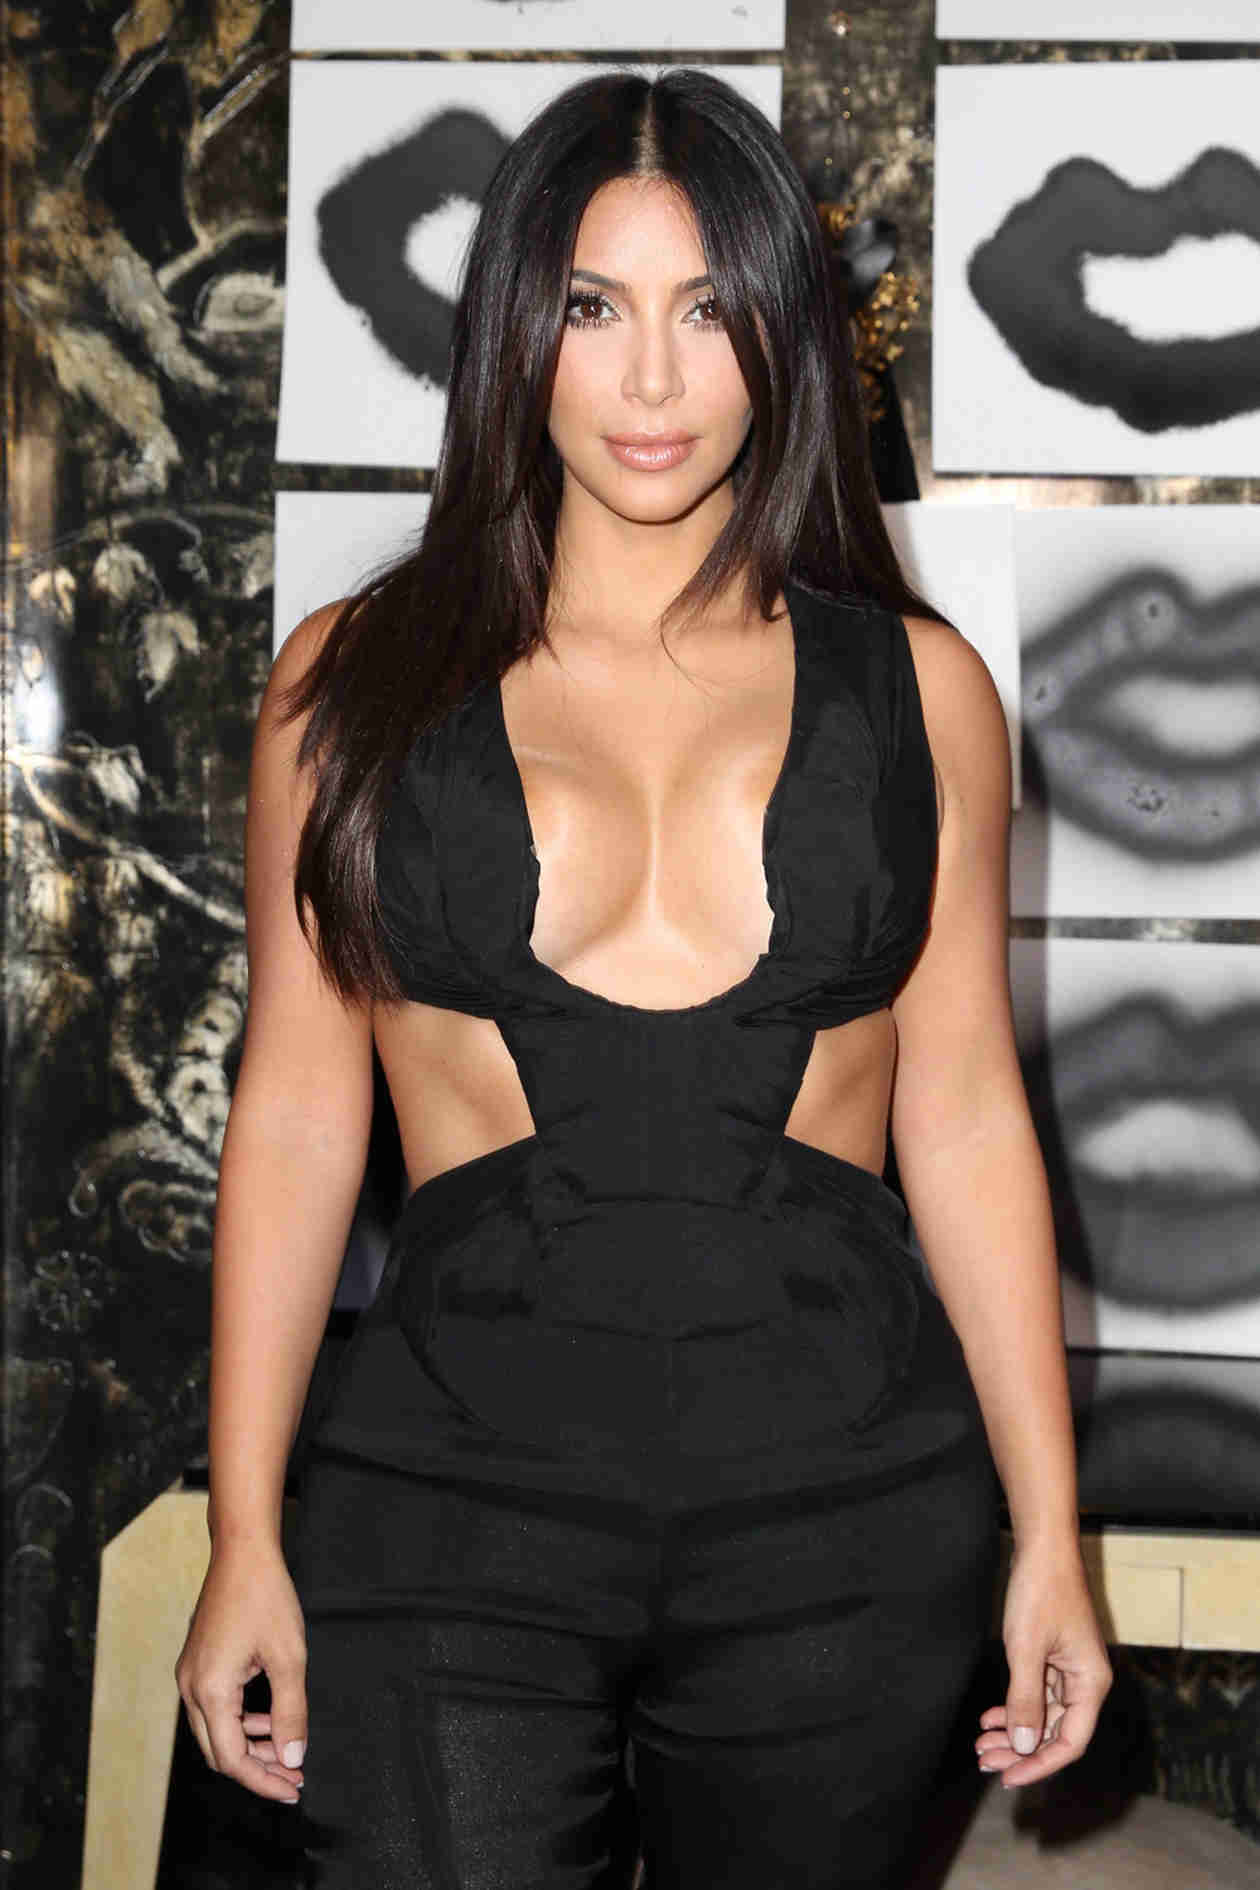 Kim Kardashian Reveals Weight Loss at VMAs — How Much Did She Lose?